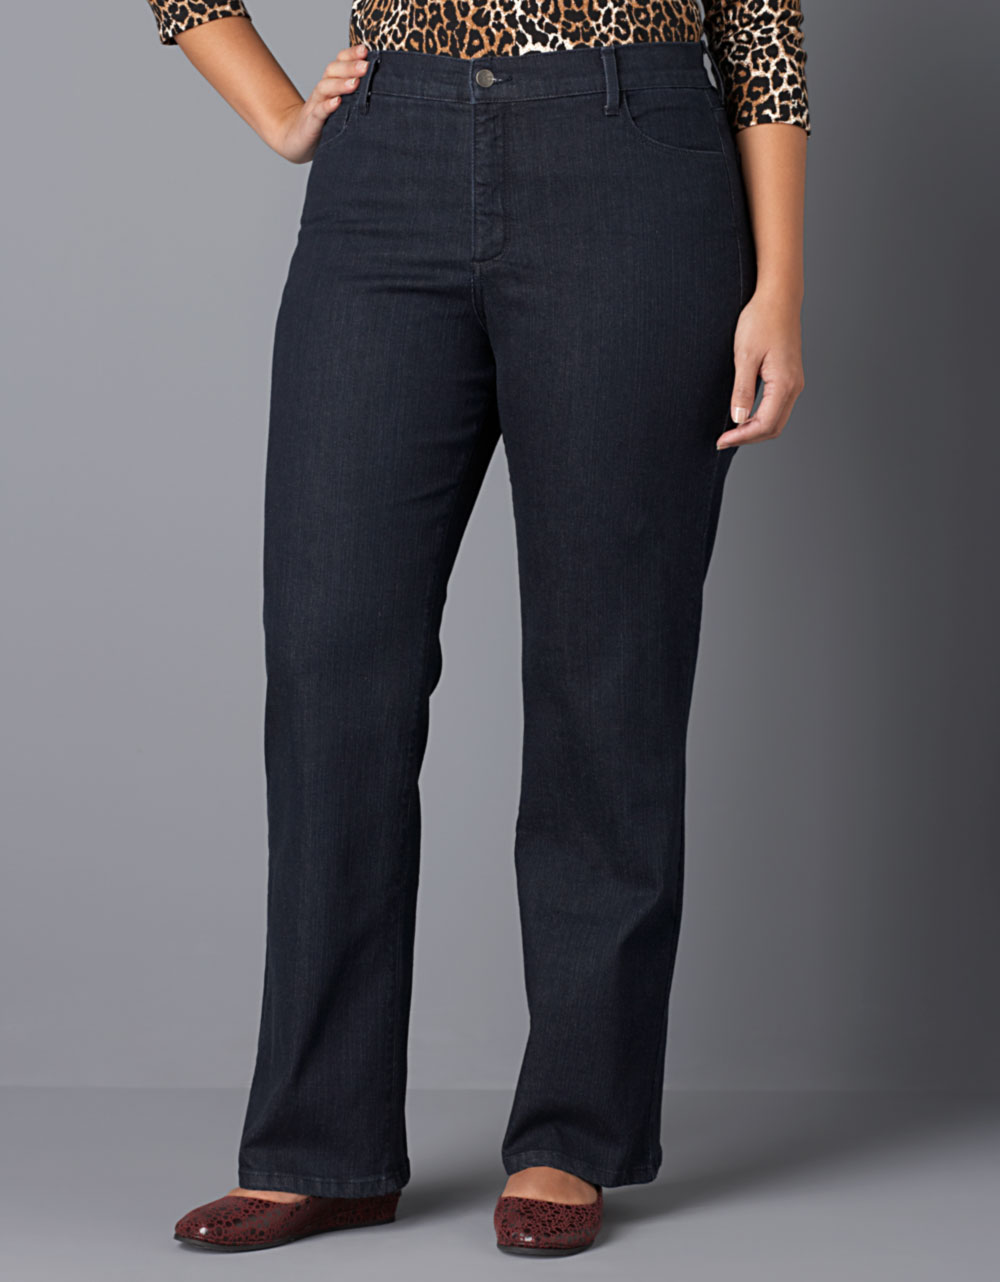 Not Your Daughter S Jeans Plus Size Barbara Rhinestone